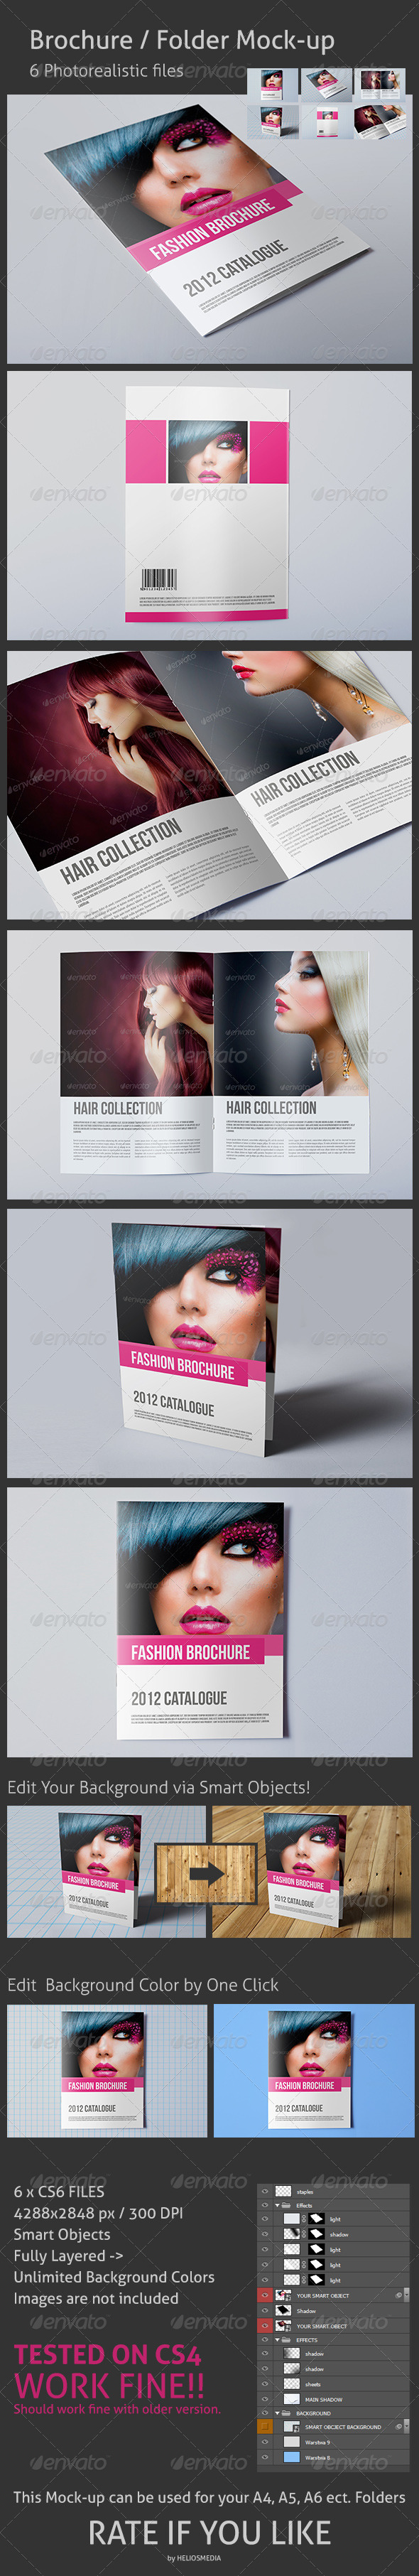 Brochure / Folder Mock-up  - Brochures Print